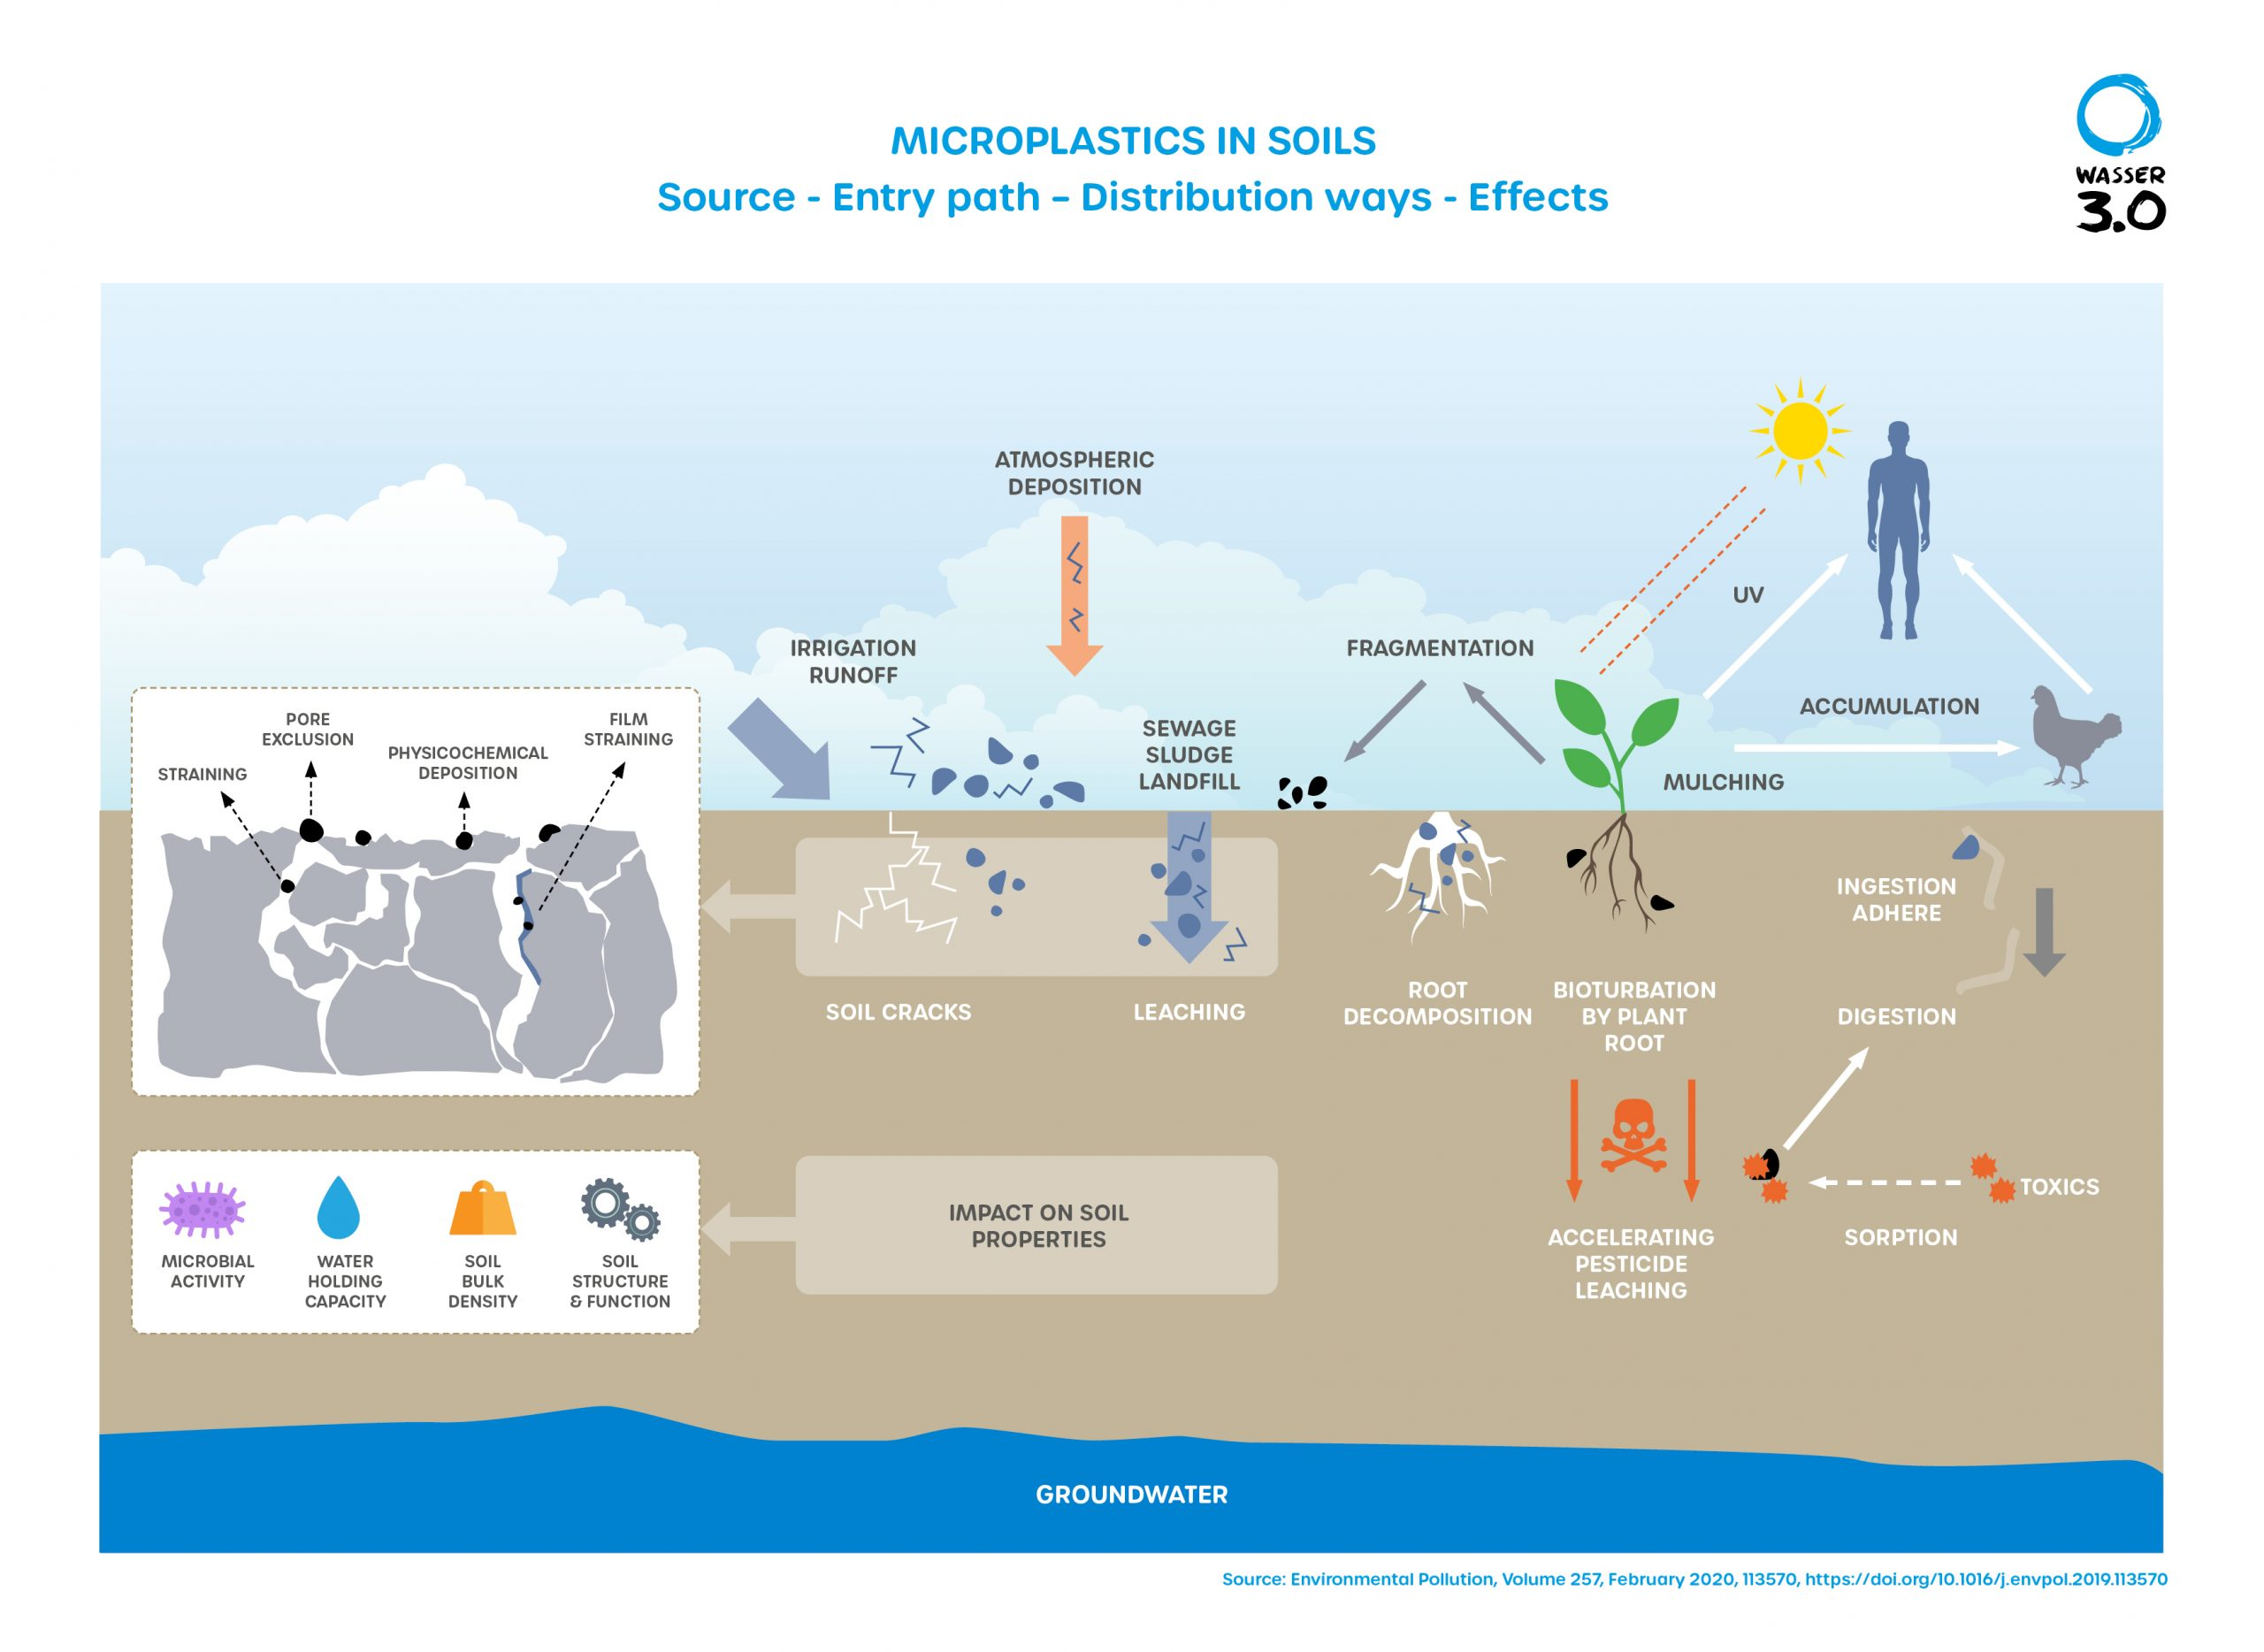 Microplastics in soils - sources, entry paths, distribution routes.